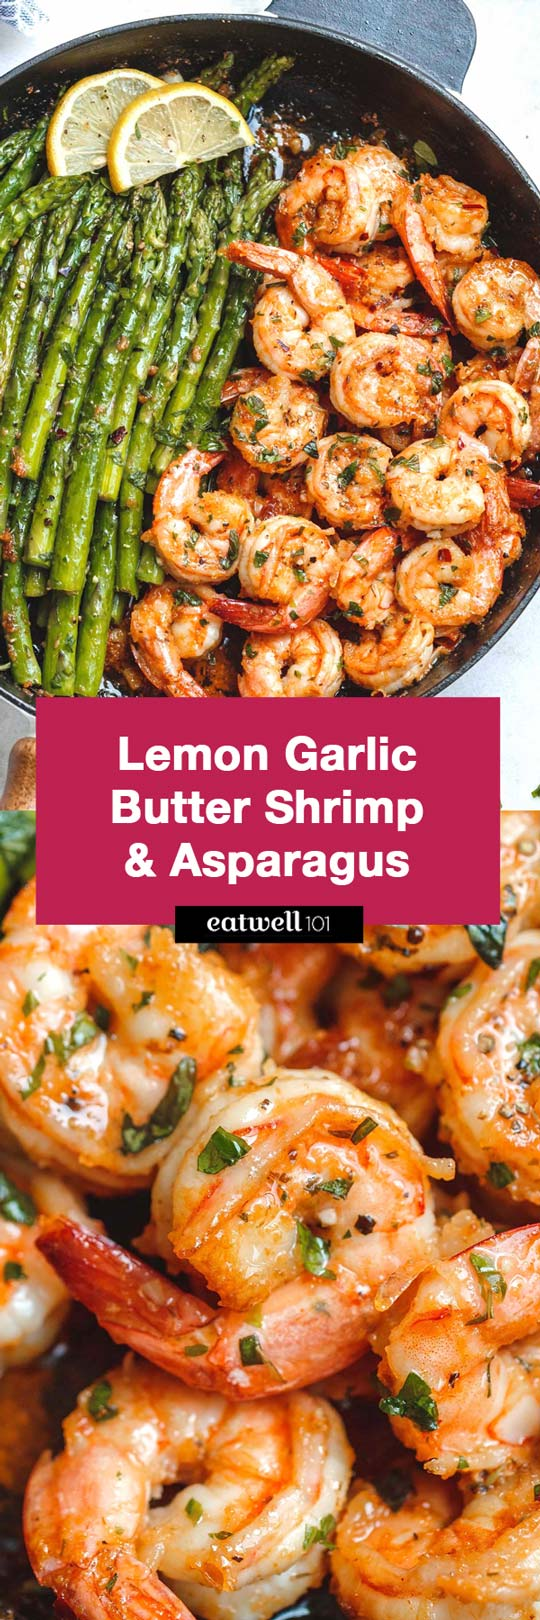 #Lemon Garlic Butter #Shrimp with #Asparagus - #eatwell101 #recipe - So much flavor and so easy to throw together, this #shrimp #dinner is a winner!